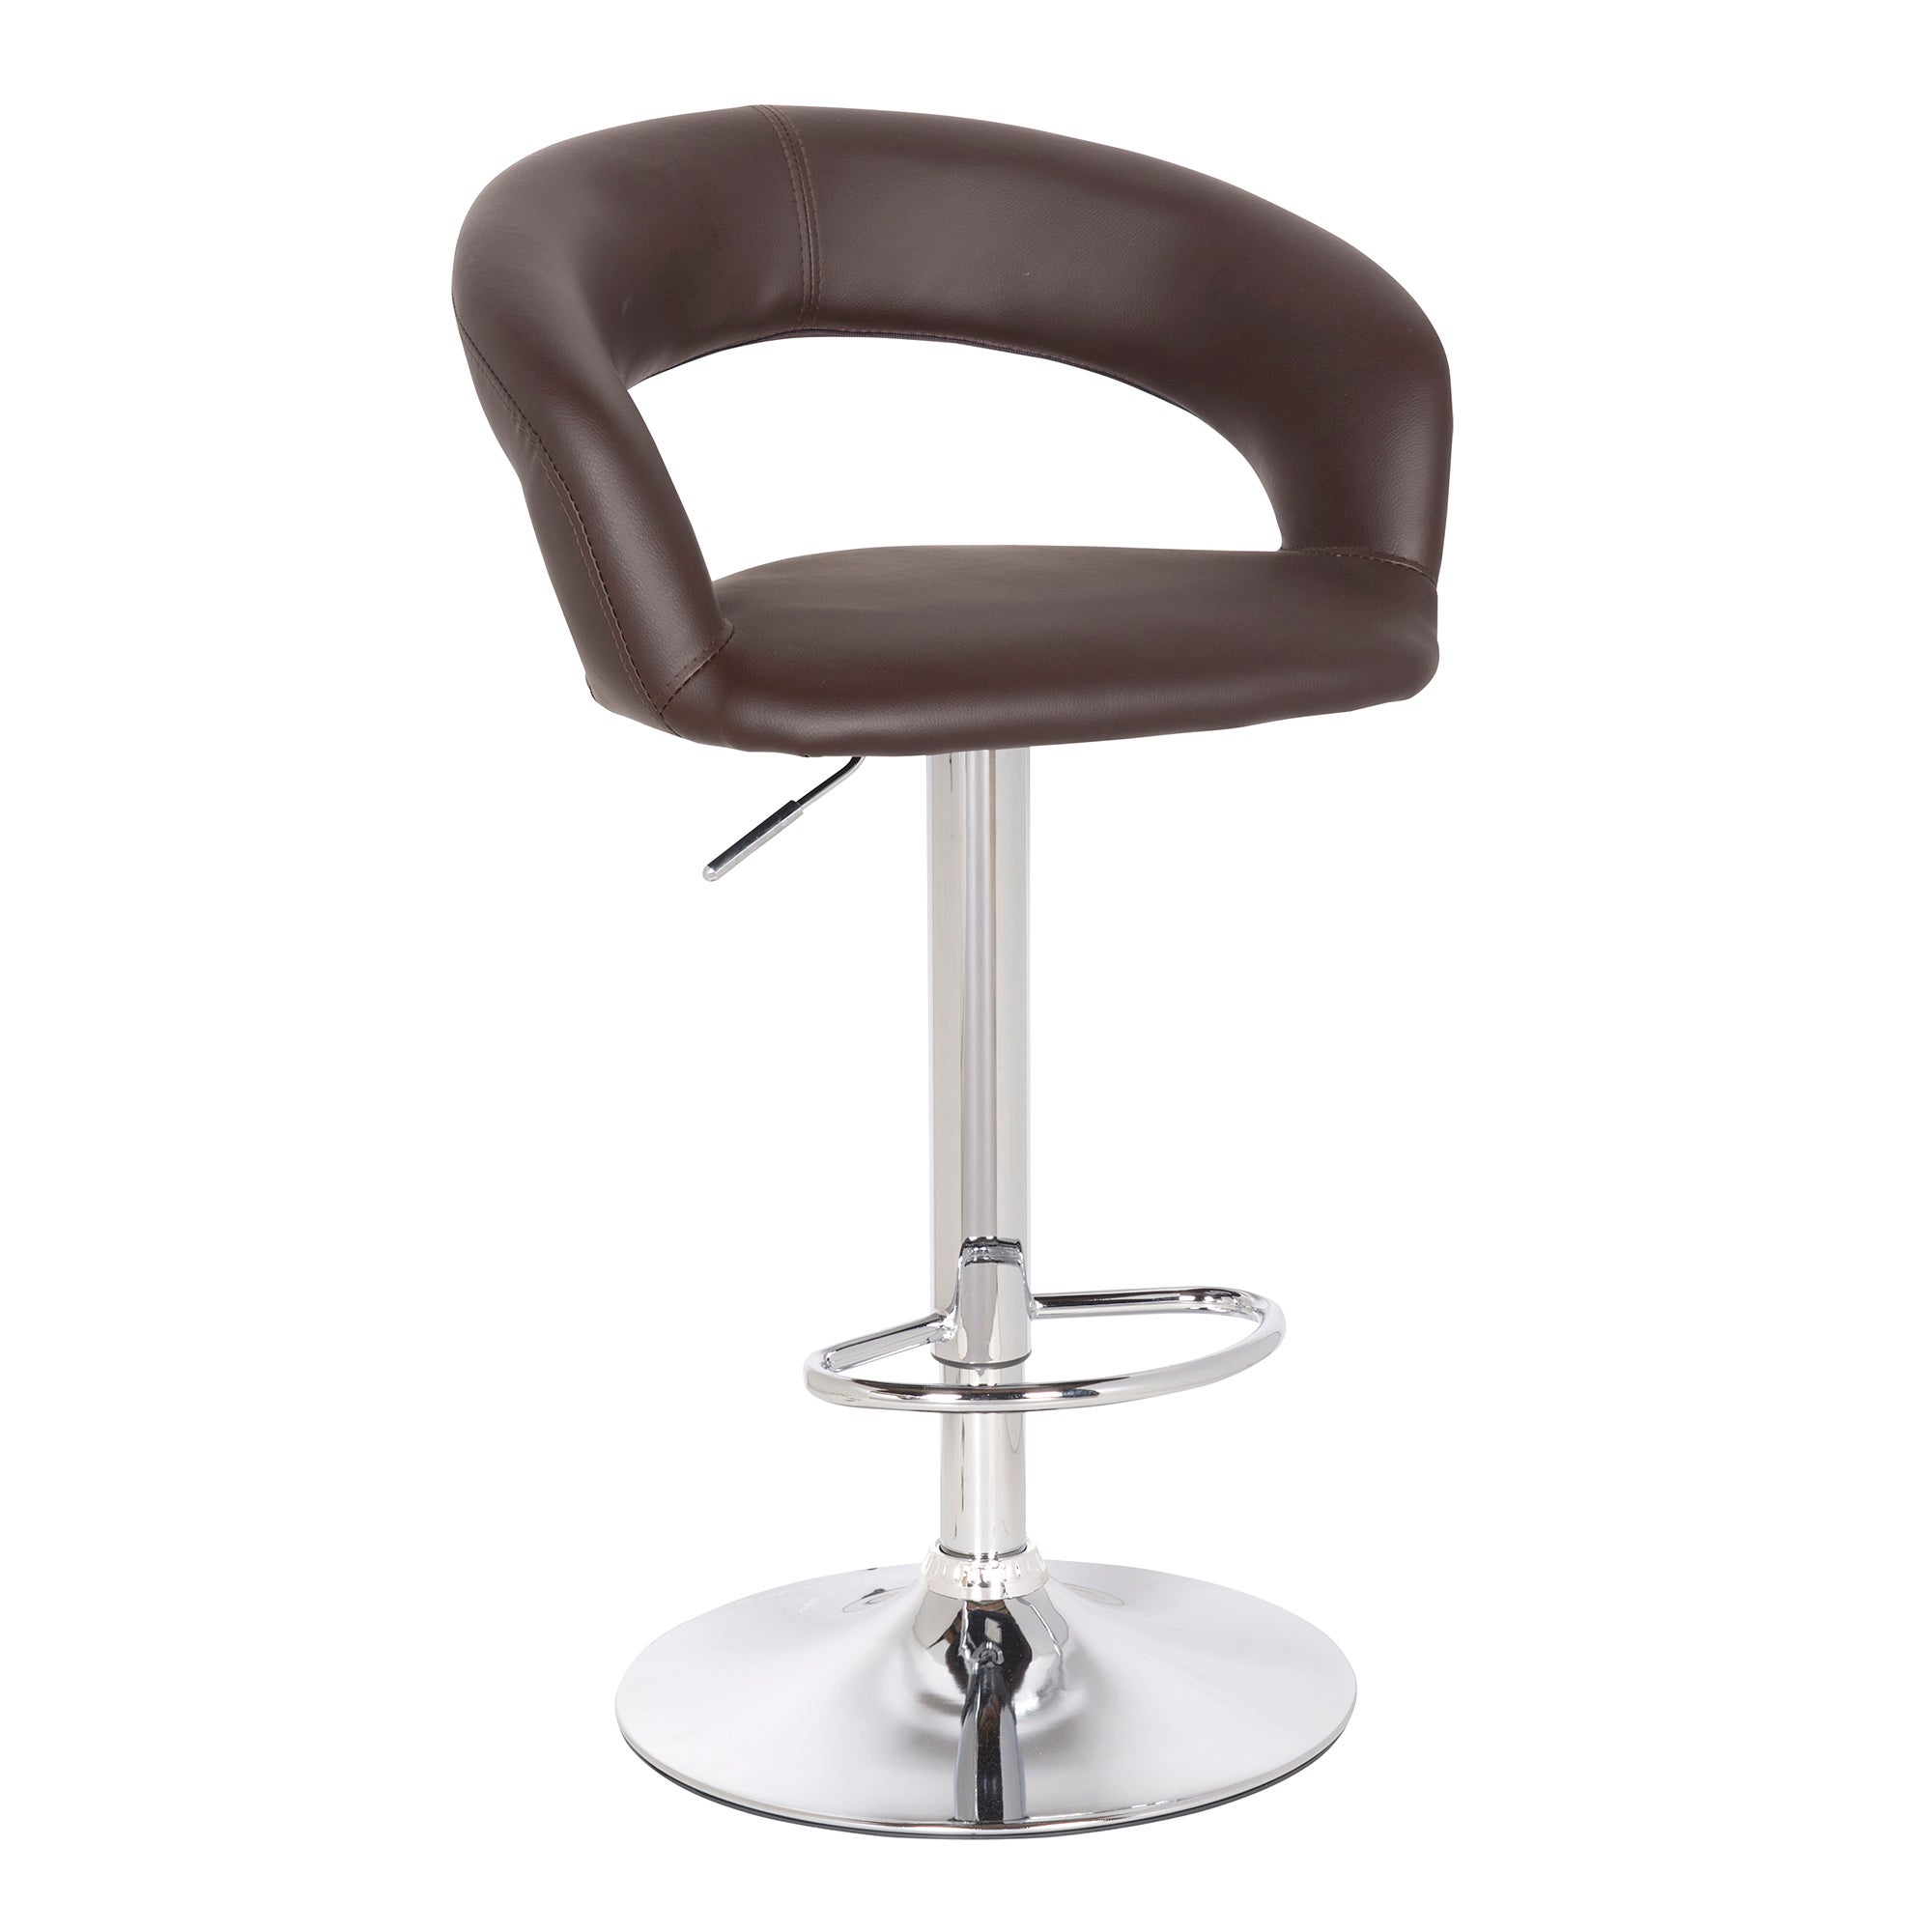 Lunar Modern Upholstered Gas Lift Bar Stool